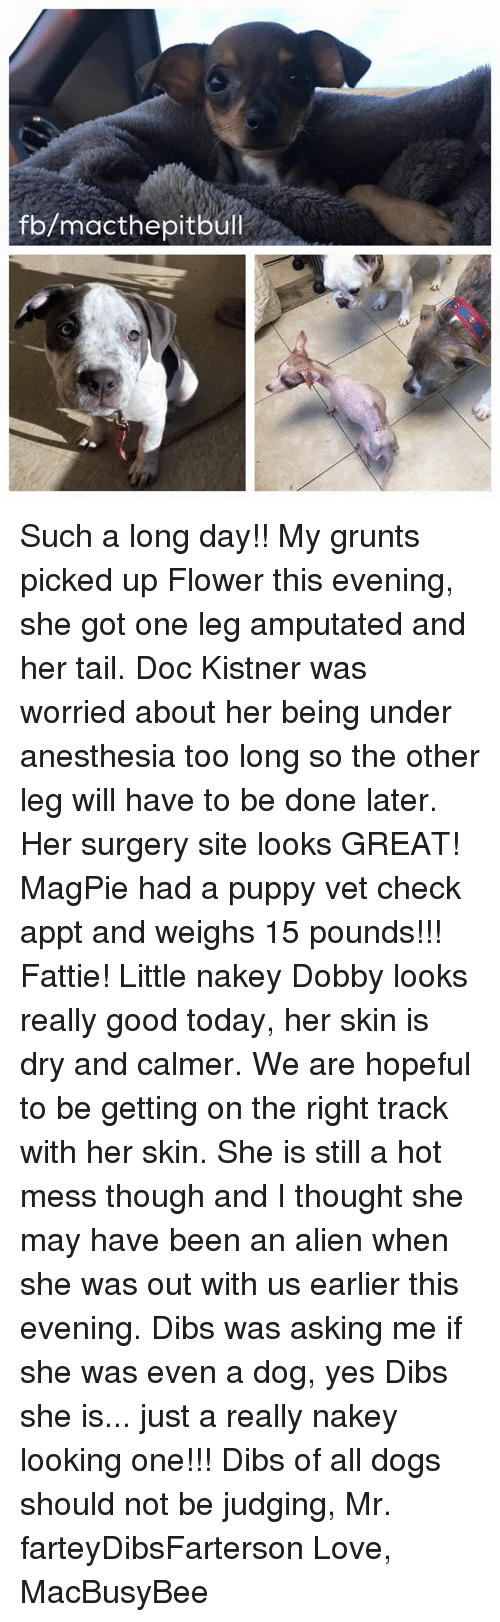 Memes, Puppies, and Pitbull: fb/macthe pitbull Such a long day!! My grunts picked up Flower this evening, she got one leg amputated and her tail. Doc Kistner was worried about her being under anesthesia too long so the other leg will have to be done later. Her surgery site looks GREAT! MagPie had a puppy vet check appt and weighs 15 pounds!!! Fattie! Little nakey Dobby looks really good today, her skin is dry and calmer. We are hopeful to be getting on the right track with her skin. She is still a hot mess though and I thought she may have been an alien when she was out with us earlier this evening. Dibs was asking me if she was even a dog, yes Dibs she is... just a really nakey looking one!!! Dibs of all dogs should not be judging, Mr. farteyDibsFarterson   Love, MacBusyBee